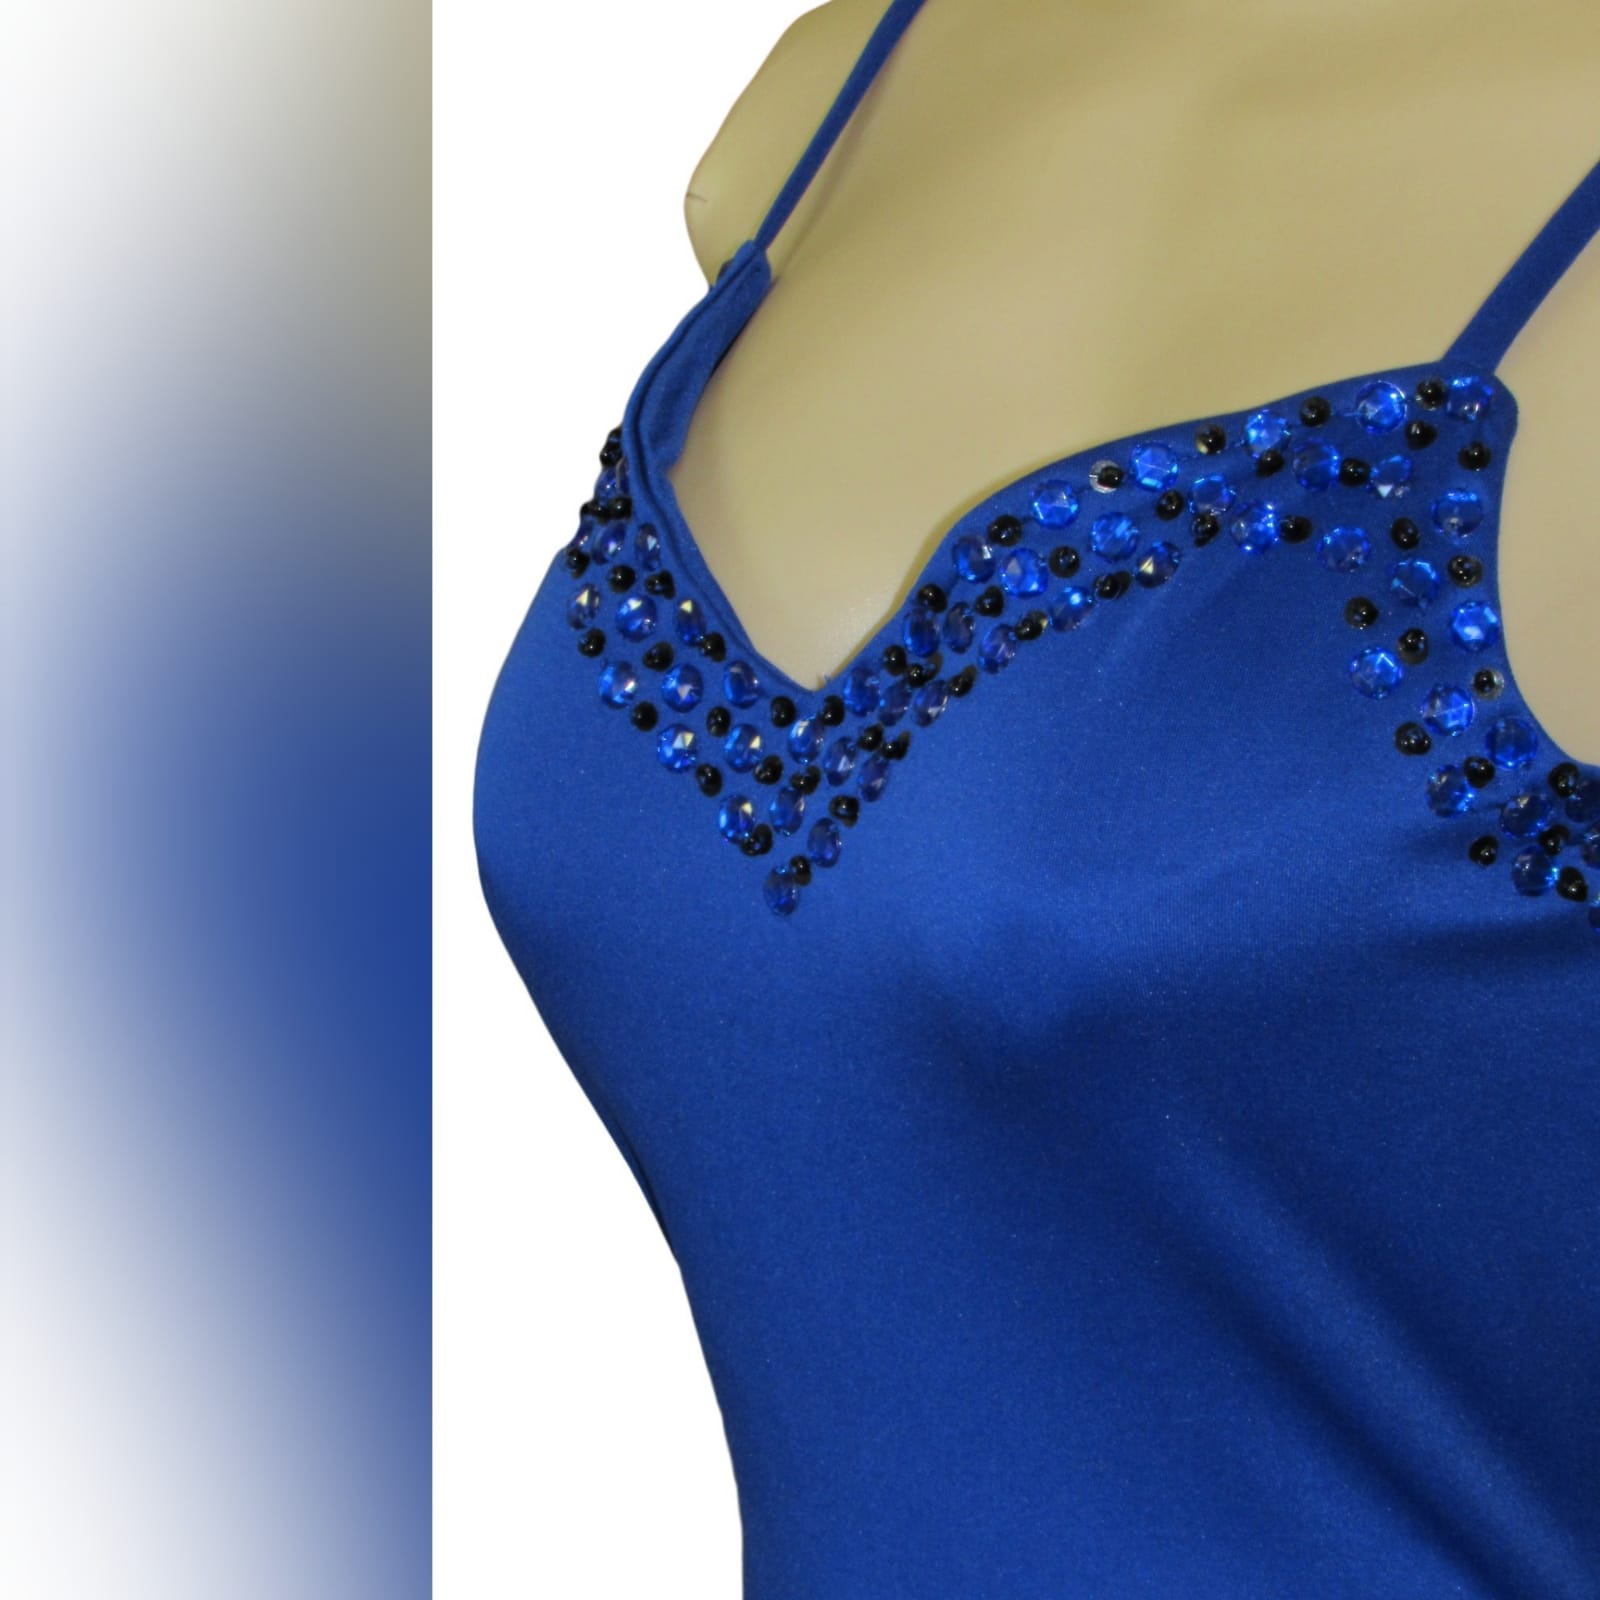 Royal blue soft mermaid beaded prom dress 4 royal blue soft mermaid beaded prom dress, with a v neckline, low v open back detailed with blue and black beads, thin shoulder straps and a long train.